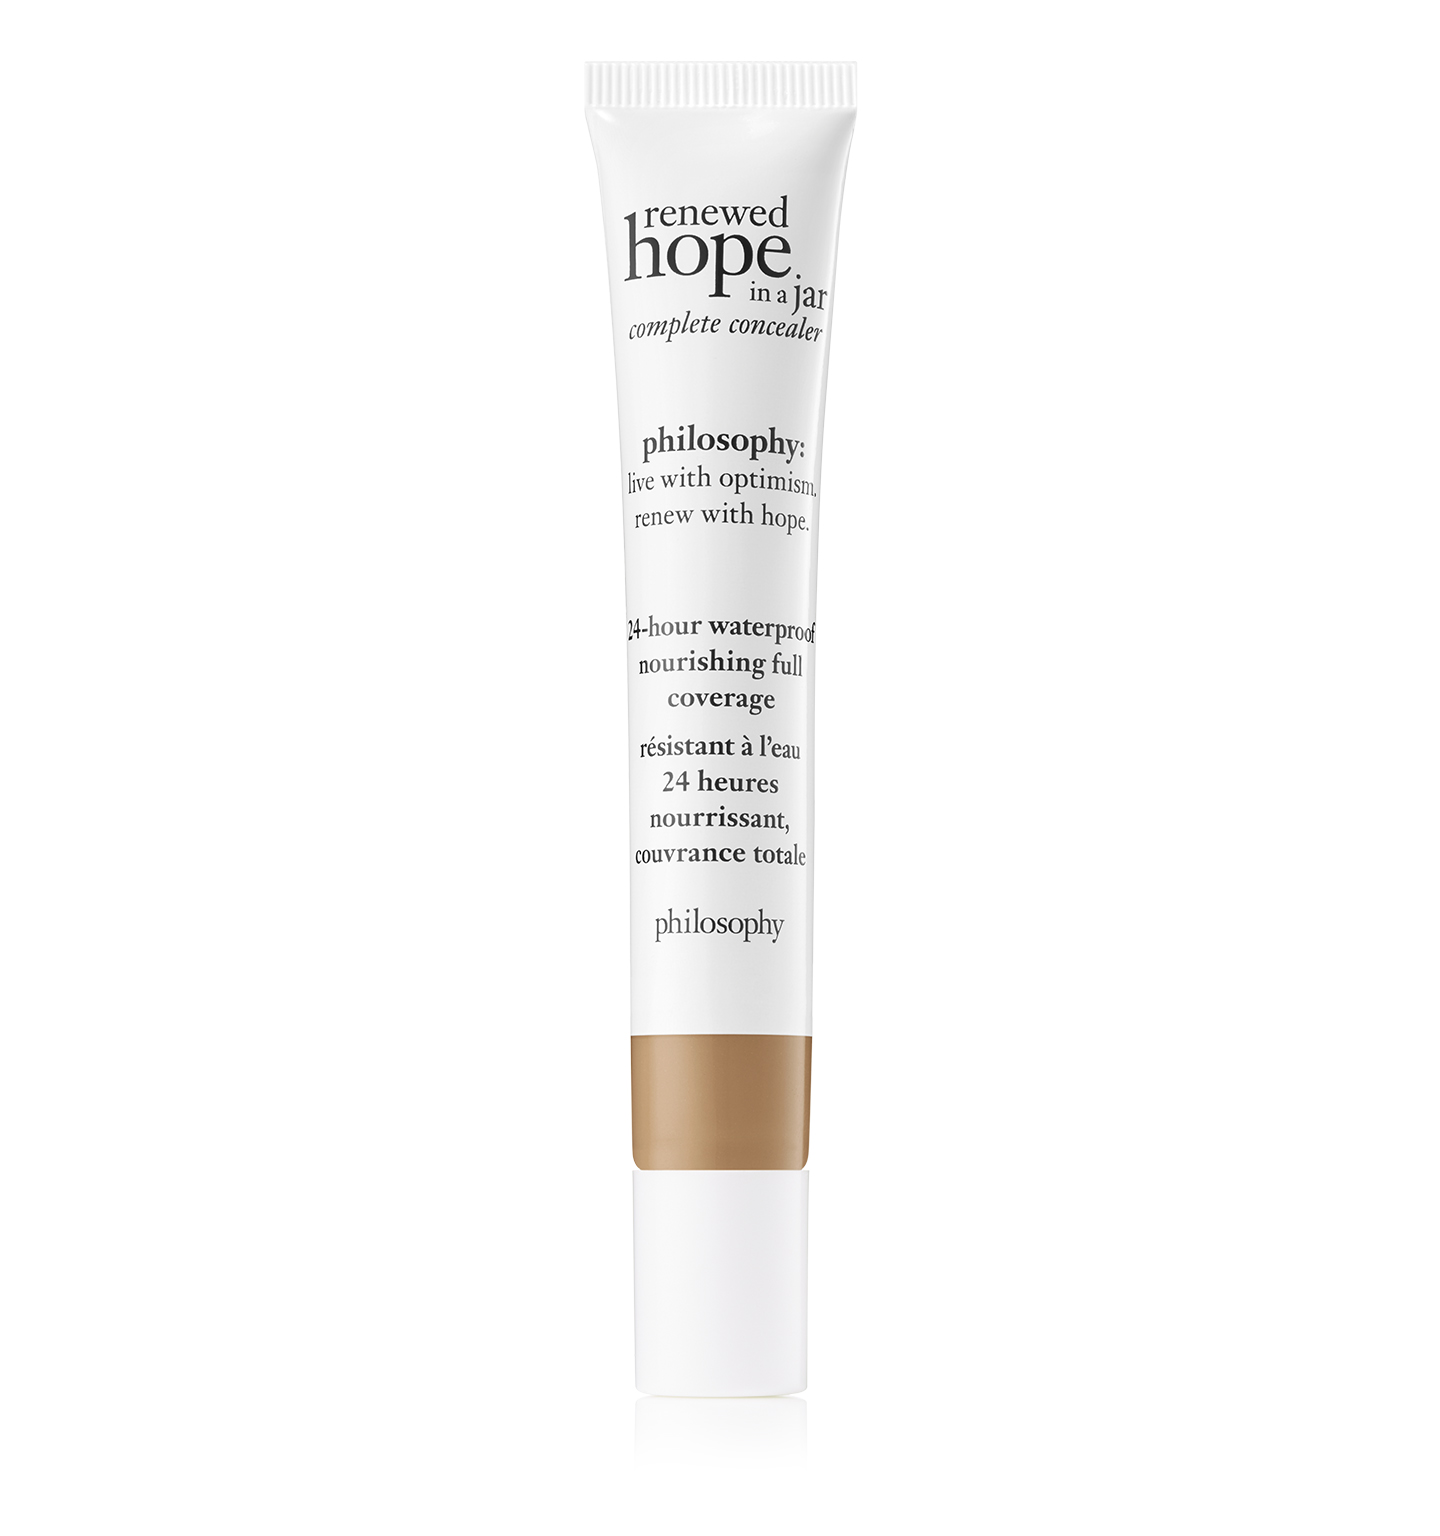 philosophy, renewed hope in a jar full coverage concealer shade 7.5 honey